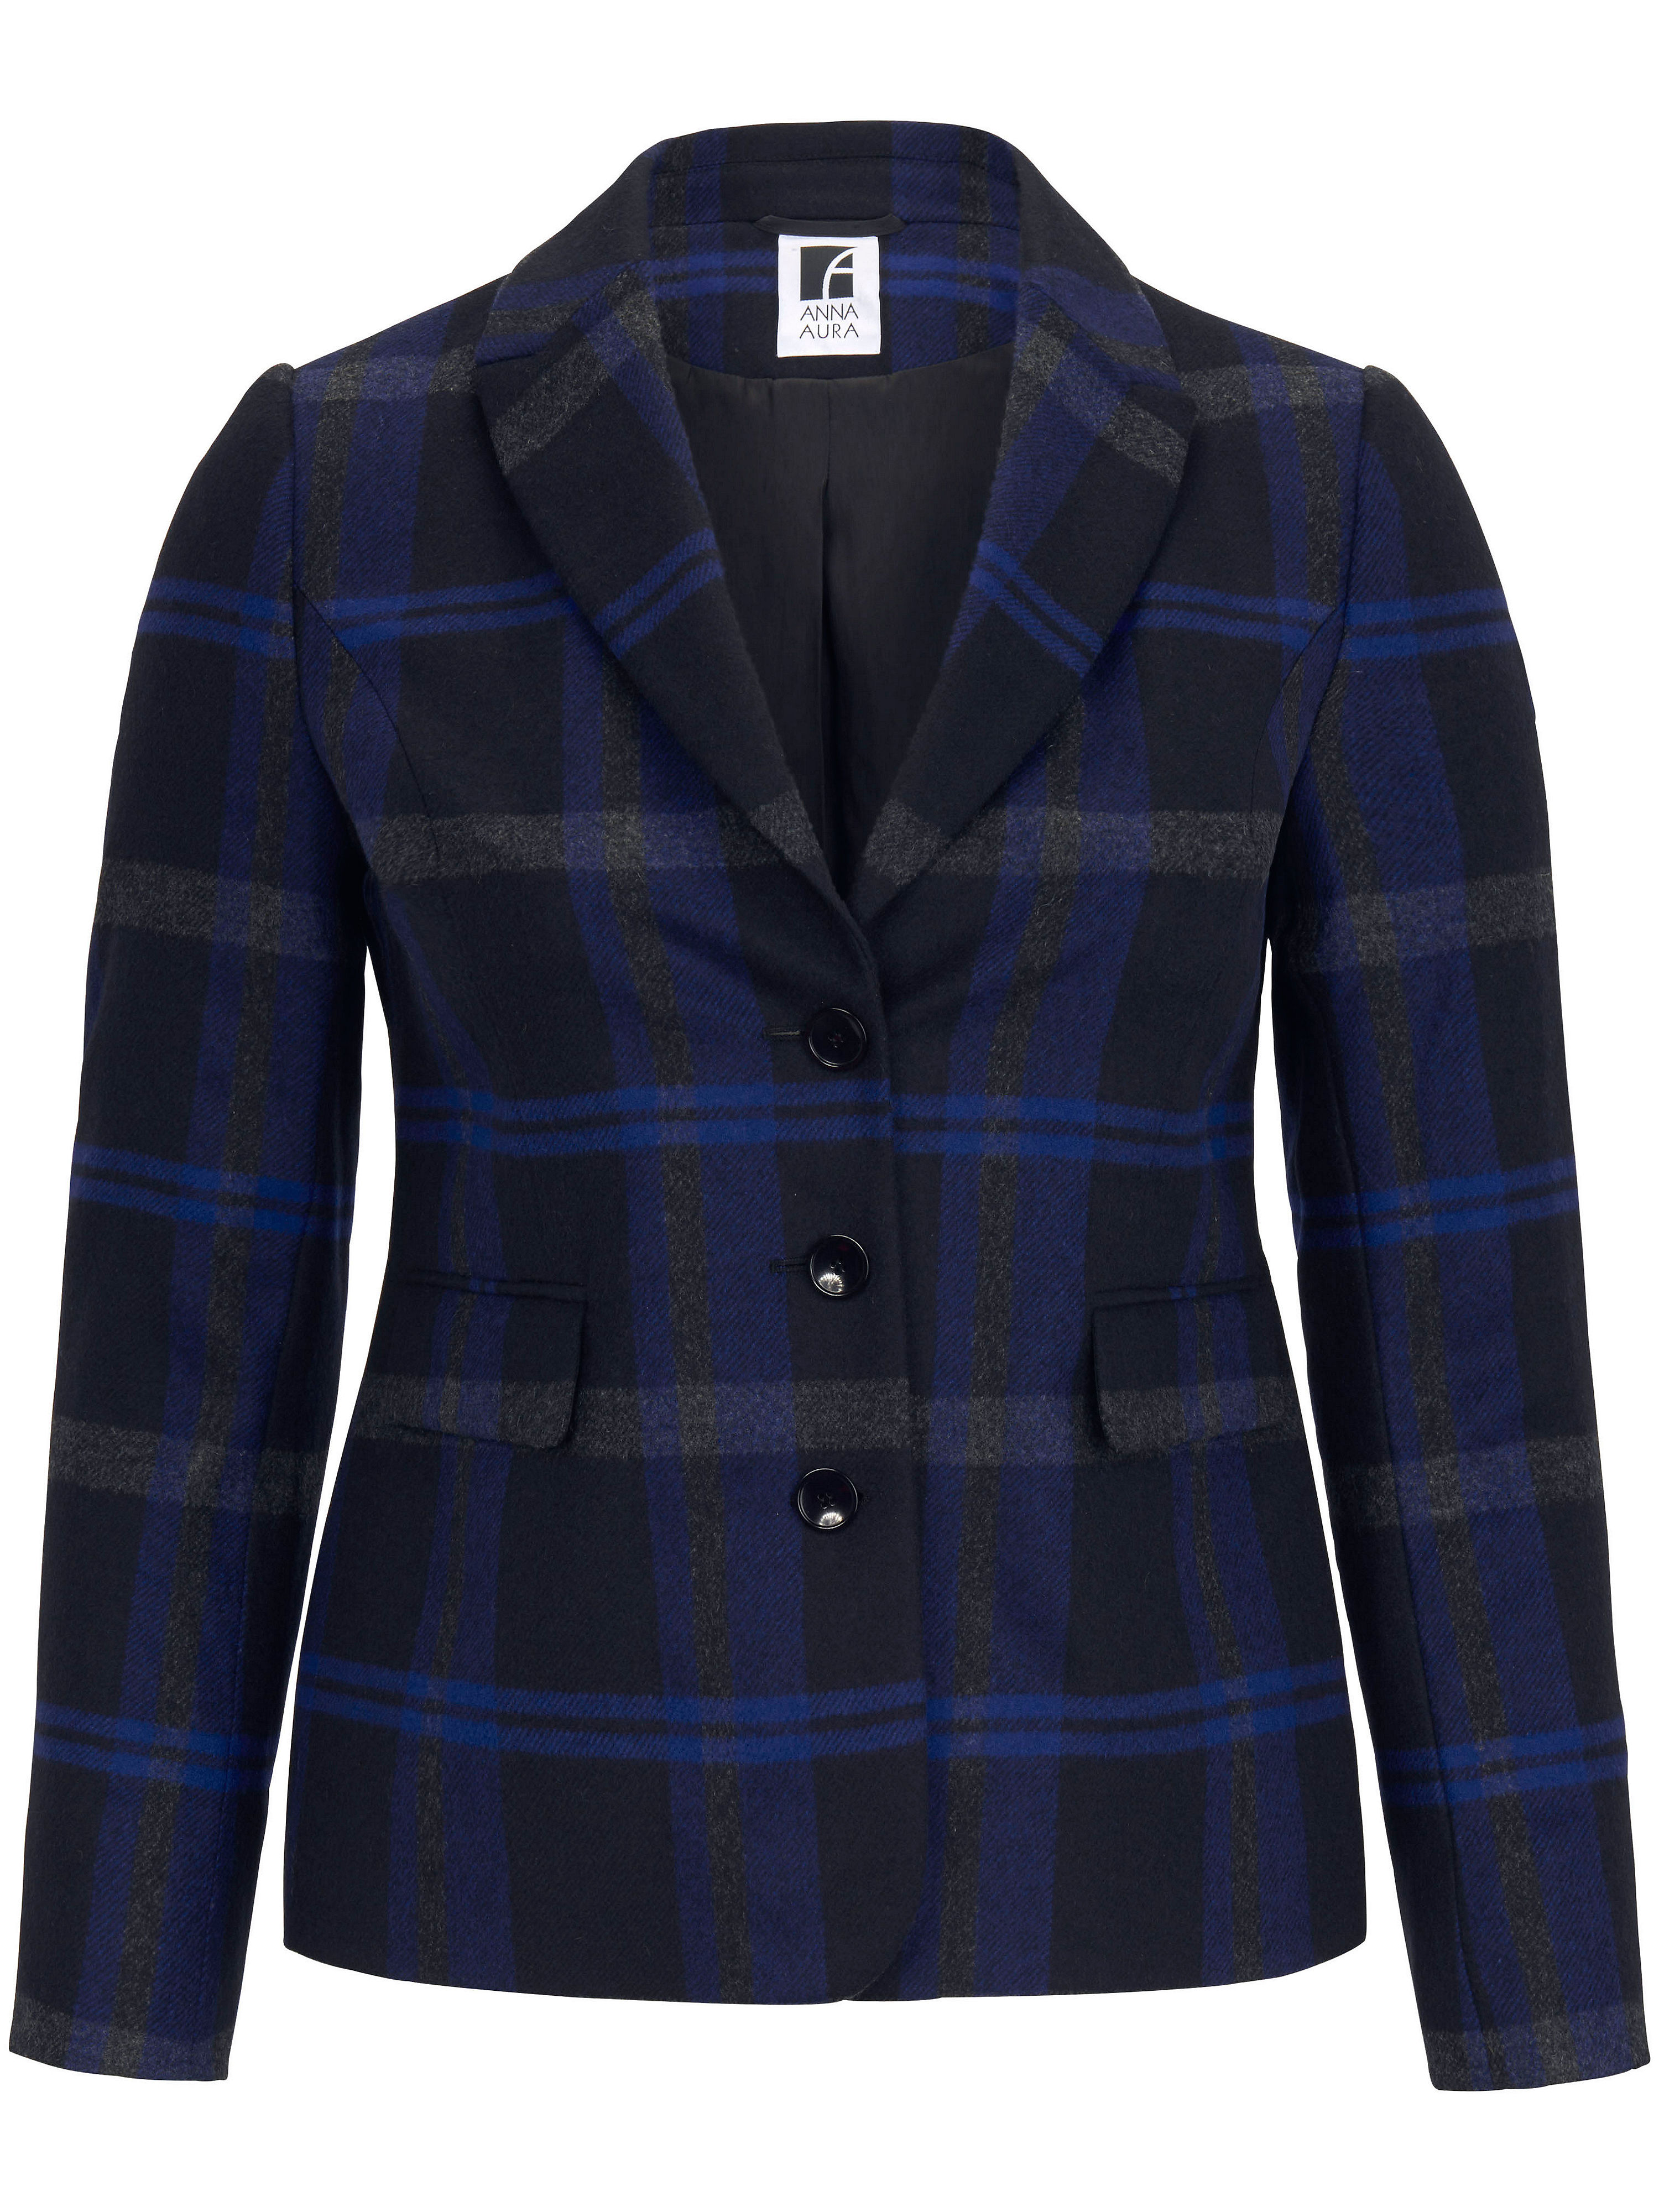 Image of   Blazer Fra Anna Aura sort